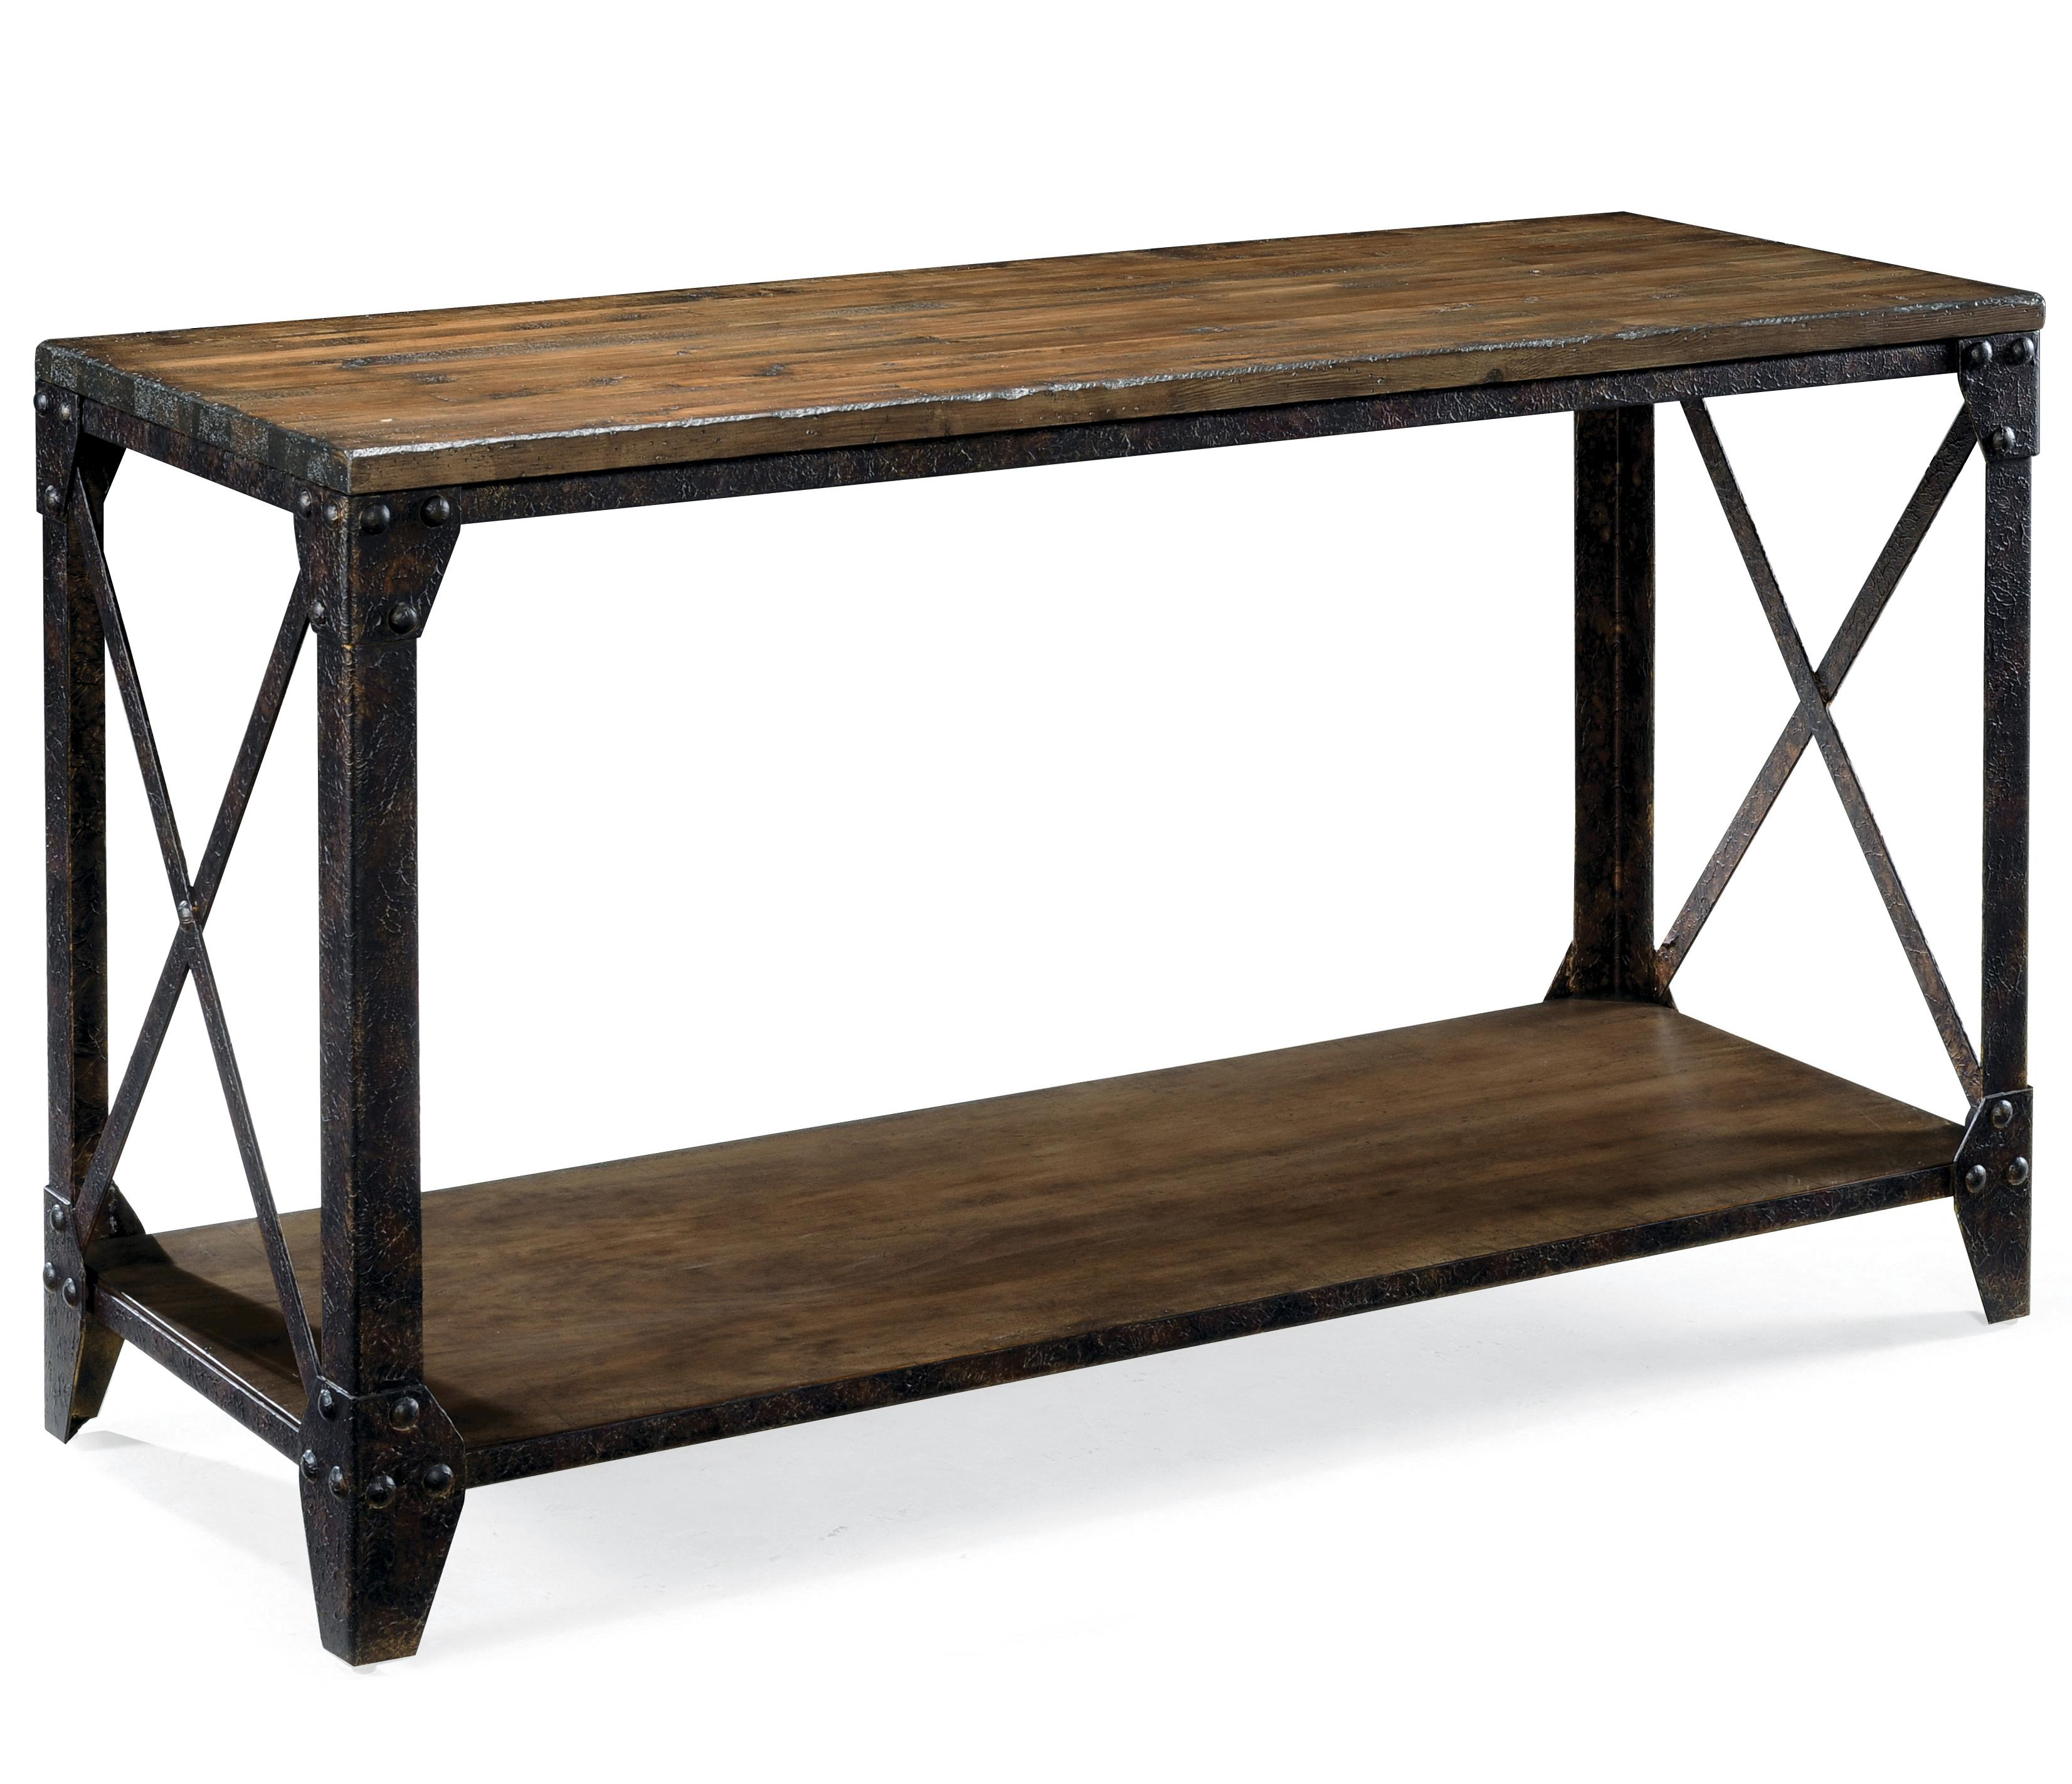 Rectangular sofa table with rustic iron legs by magnussen for Sofa table leg height